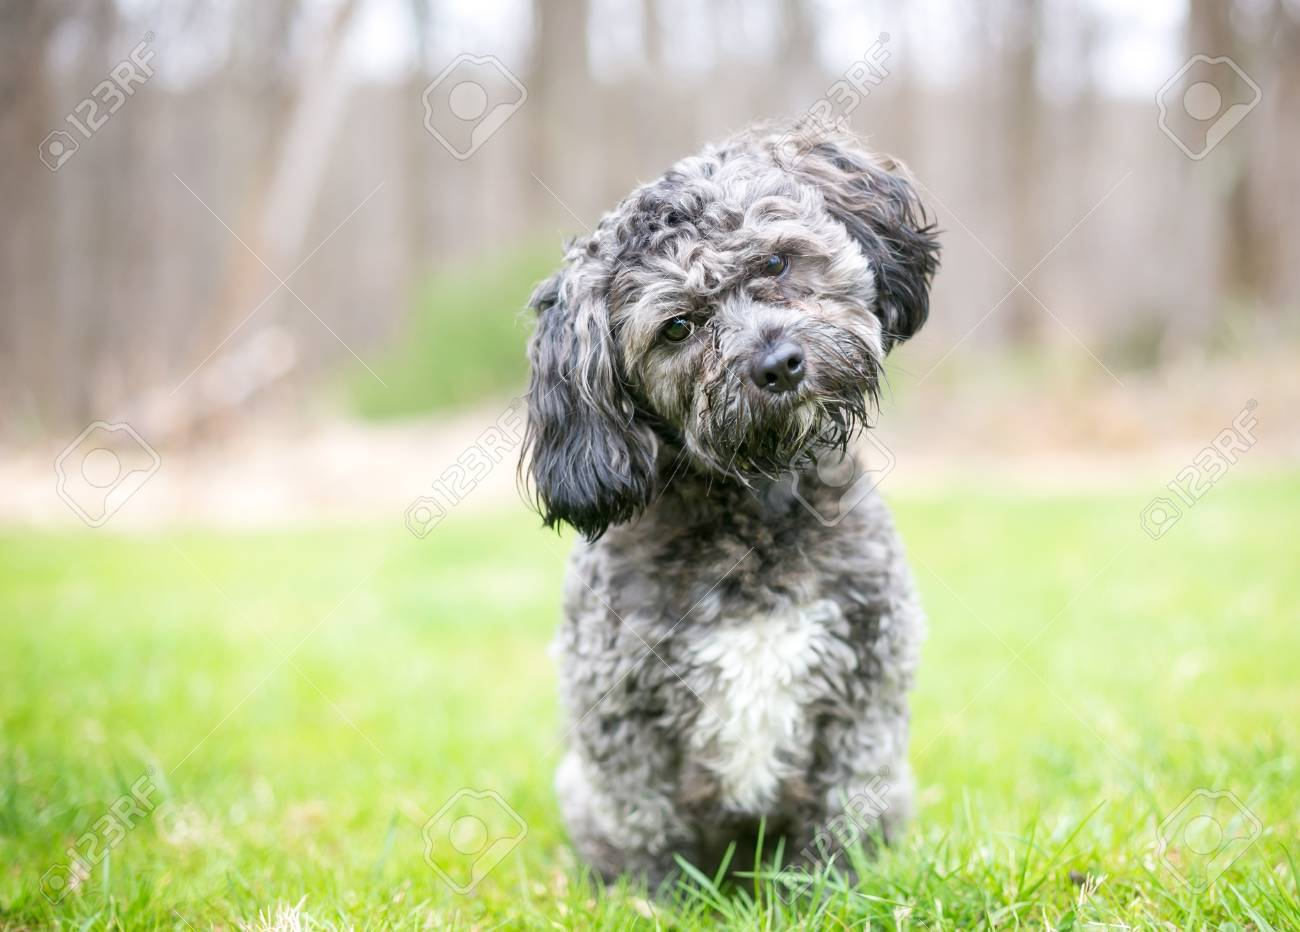 A Cute Gray And White Havanese Shih Tzu Mixed Breed Dog Listening Stock Photo Picture And Royalty Free Image Image 122101356